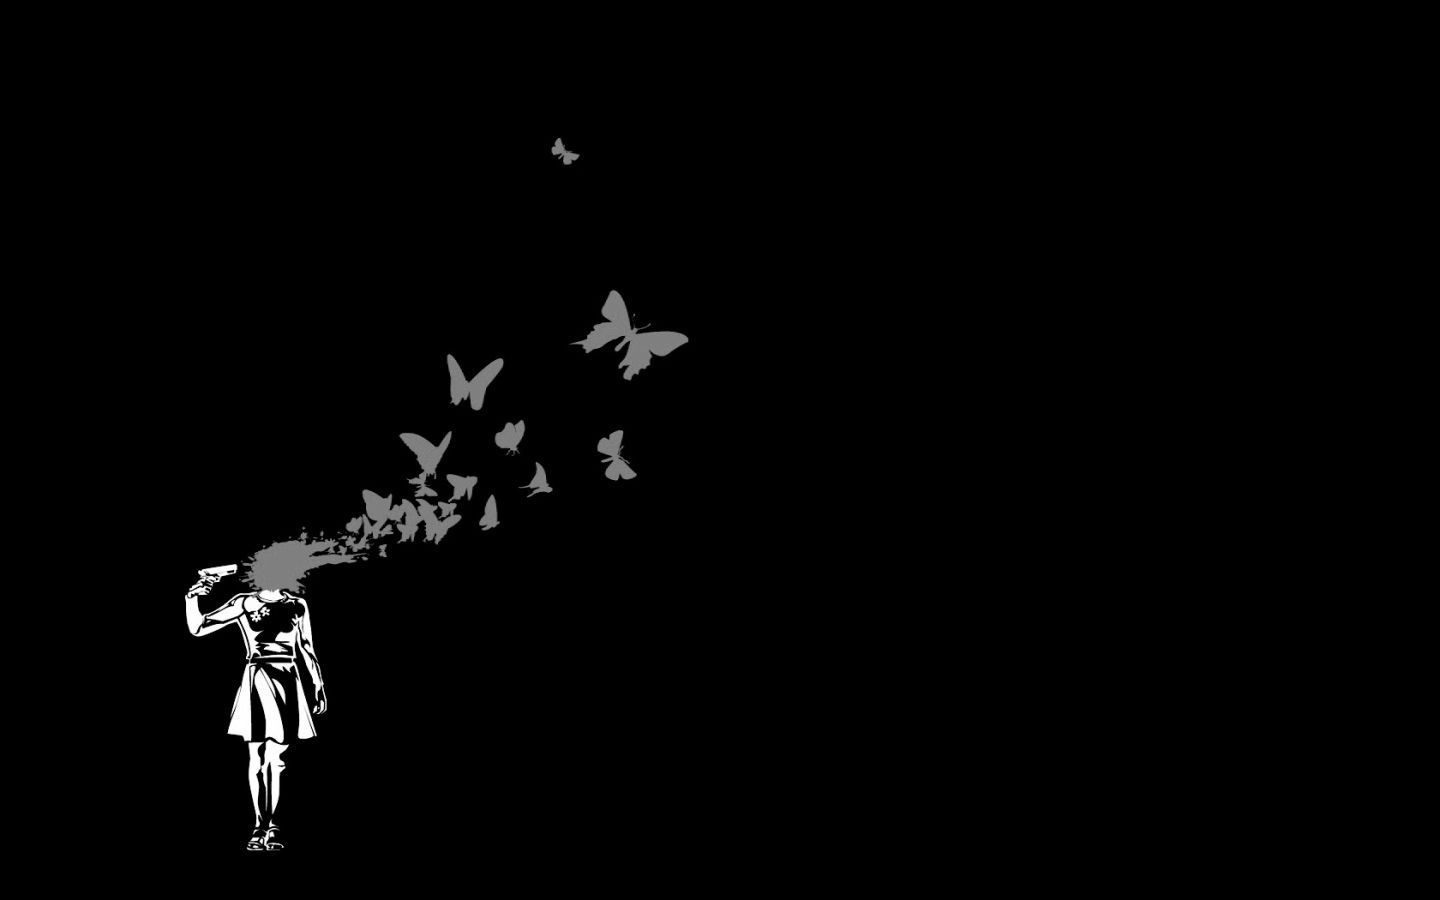 Emo Aesthetic Wallpapers Top Free Emo Aesthetic Backgrounds